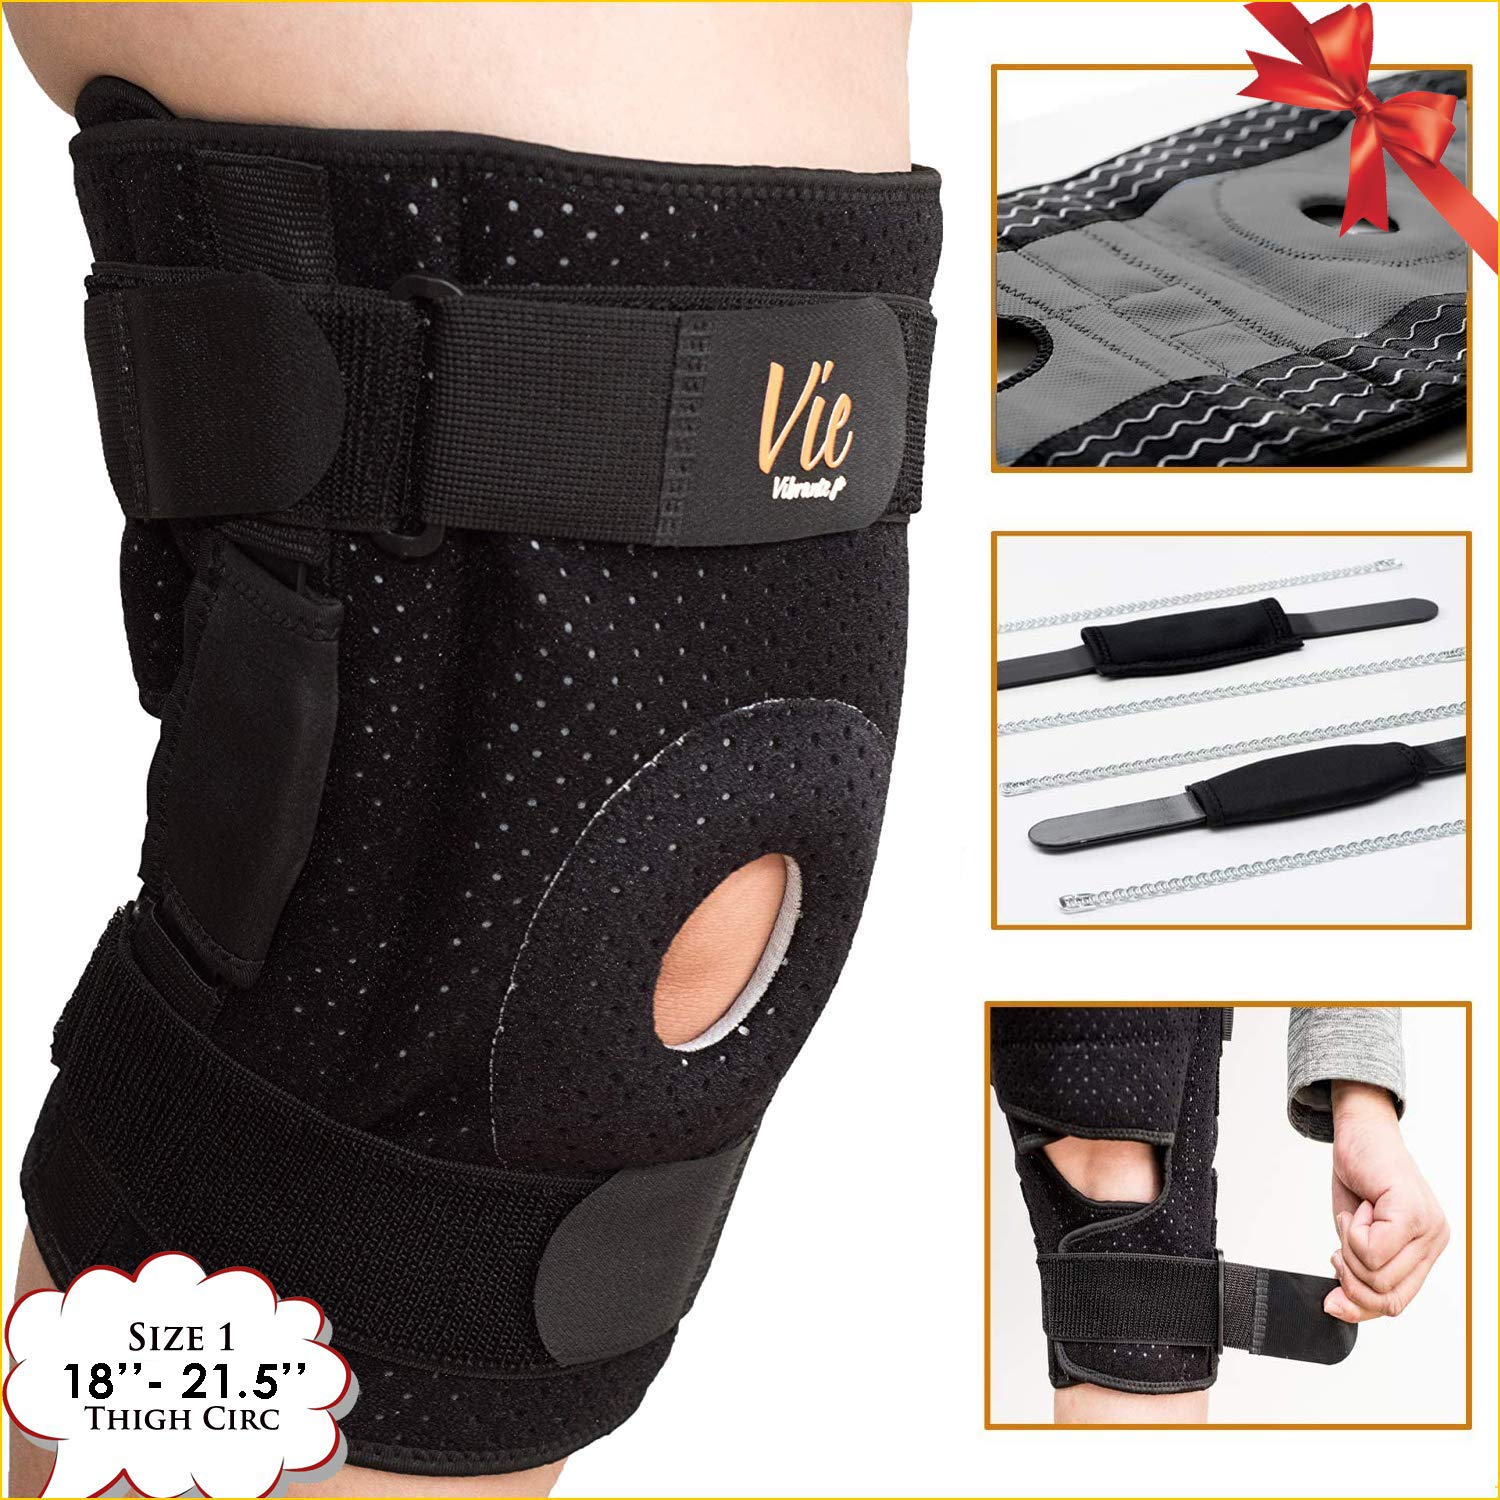 Patella Stabilizing Knee Brace - Newly Engineered Knee Braces with Enhancement on Flexibility, Extra Supportive, Non-Slip and Non Bulky - Vie Vibrante fits 18''-21.5'' Thigh Circumference, Black